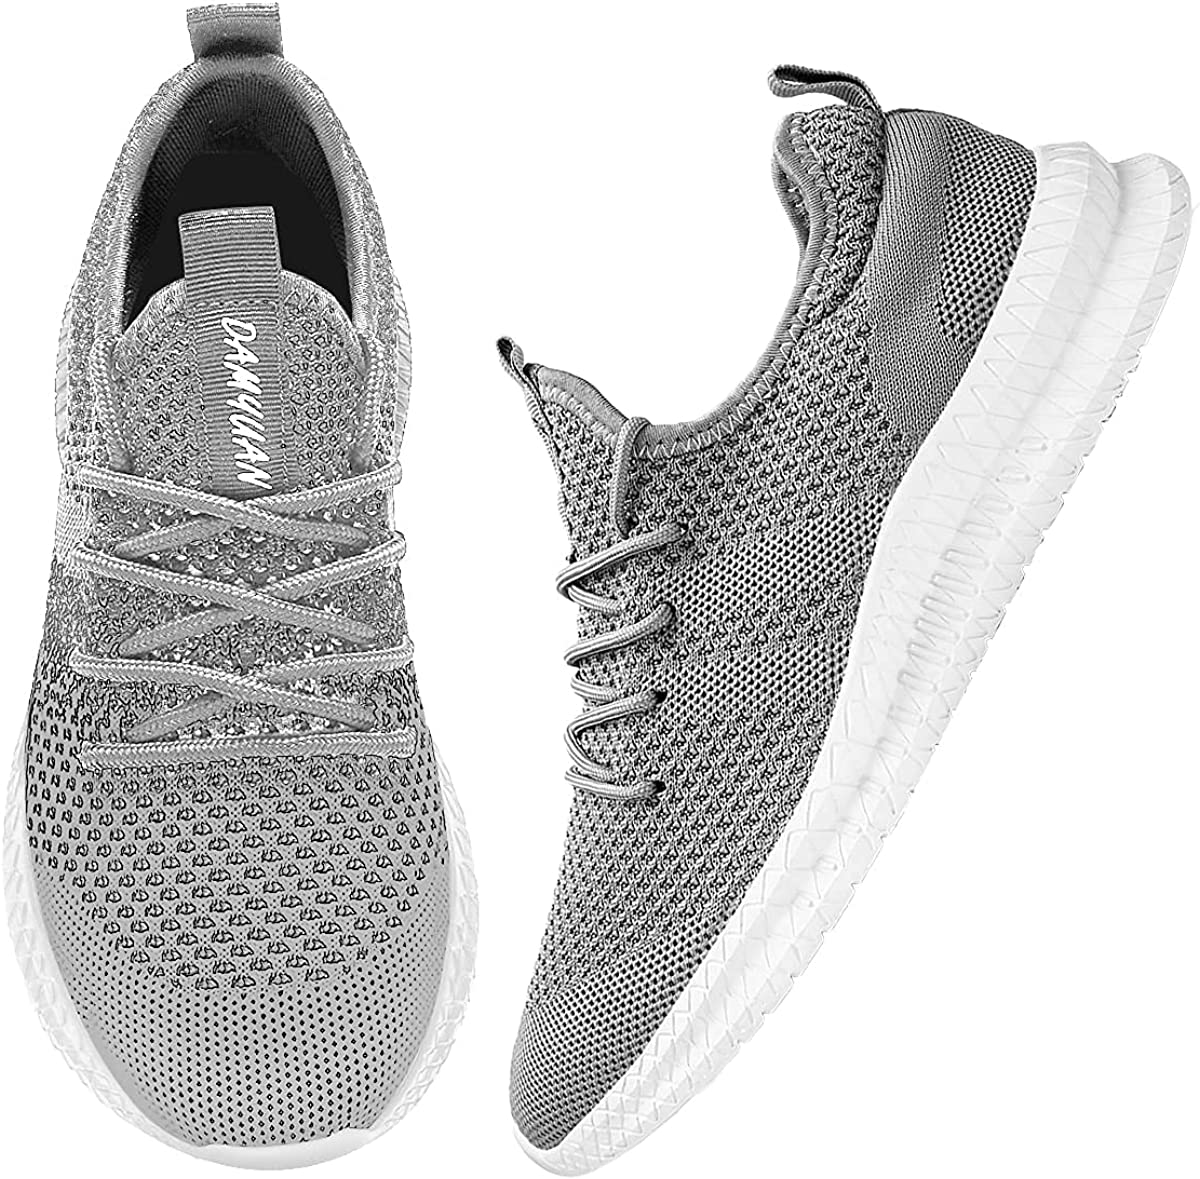 Yytlch Mens Tennis Shoes Non Slip Max 87% OFF Running Light quality assurance Breathable